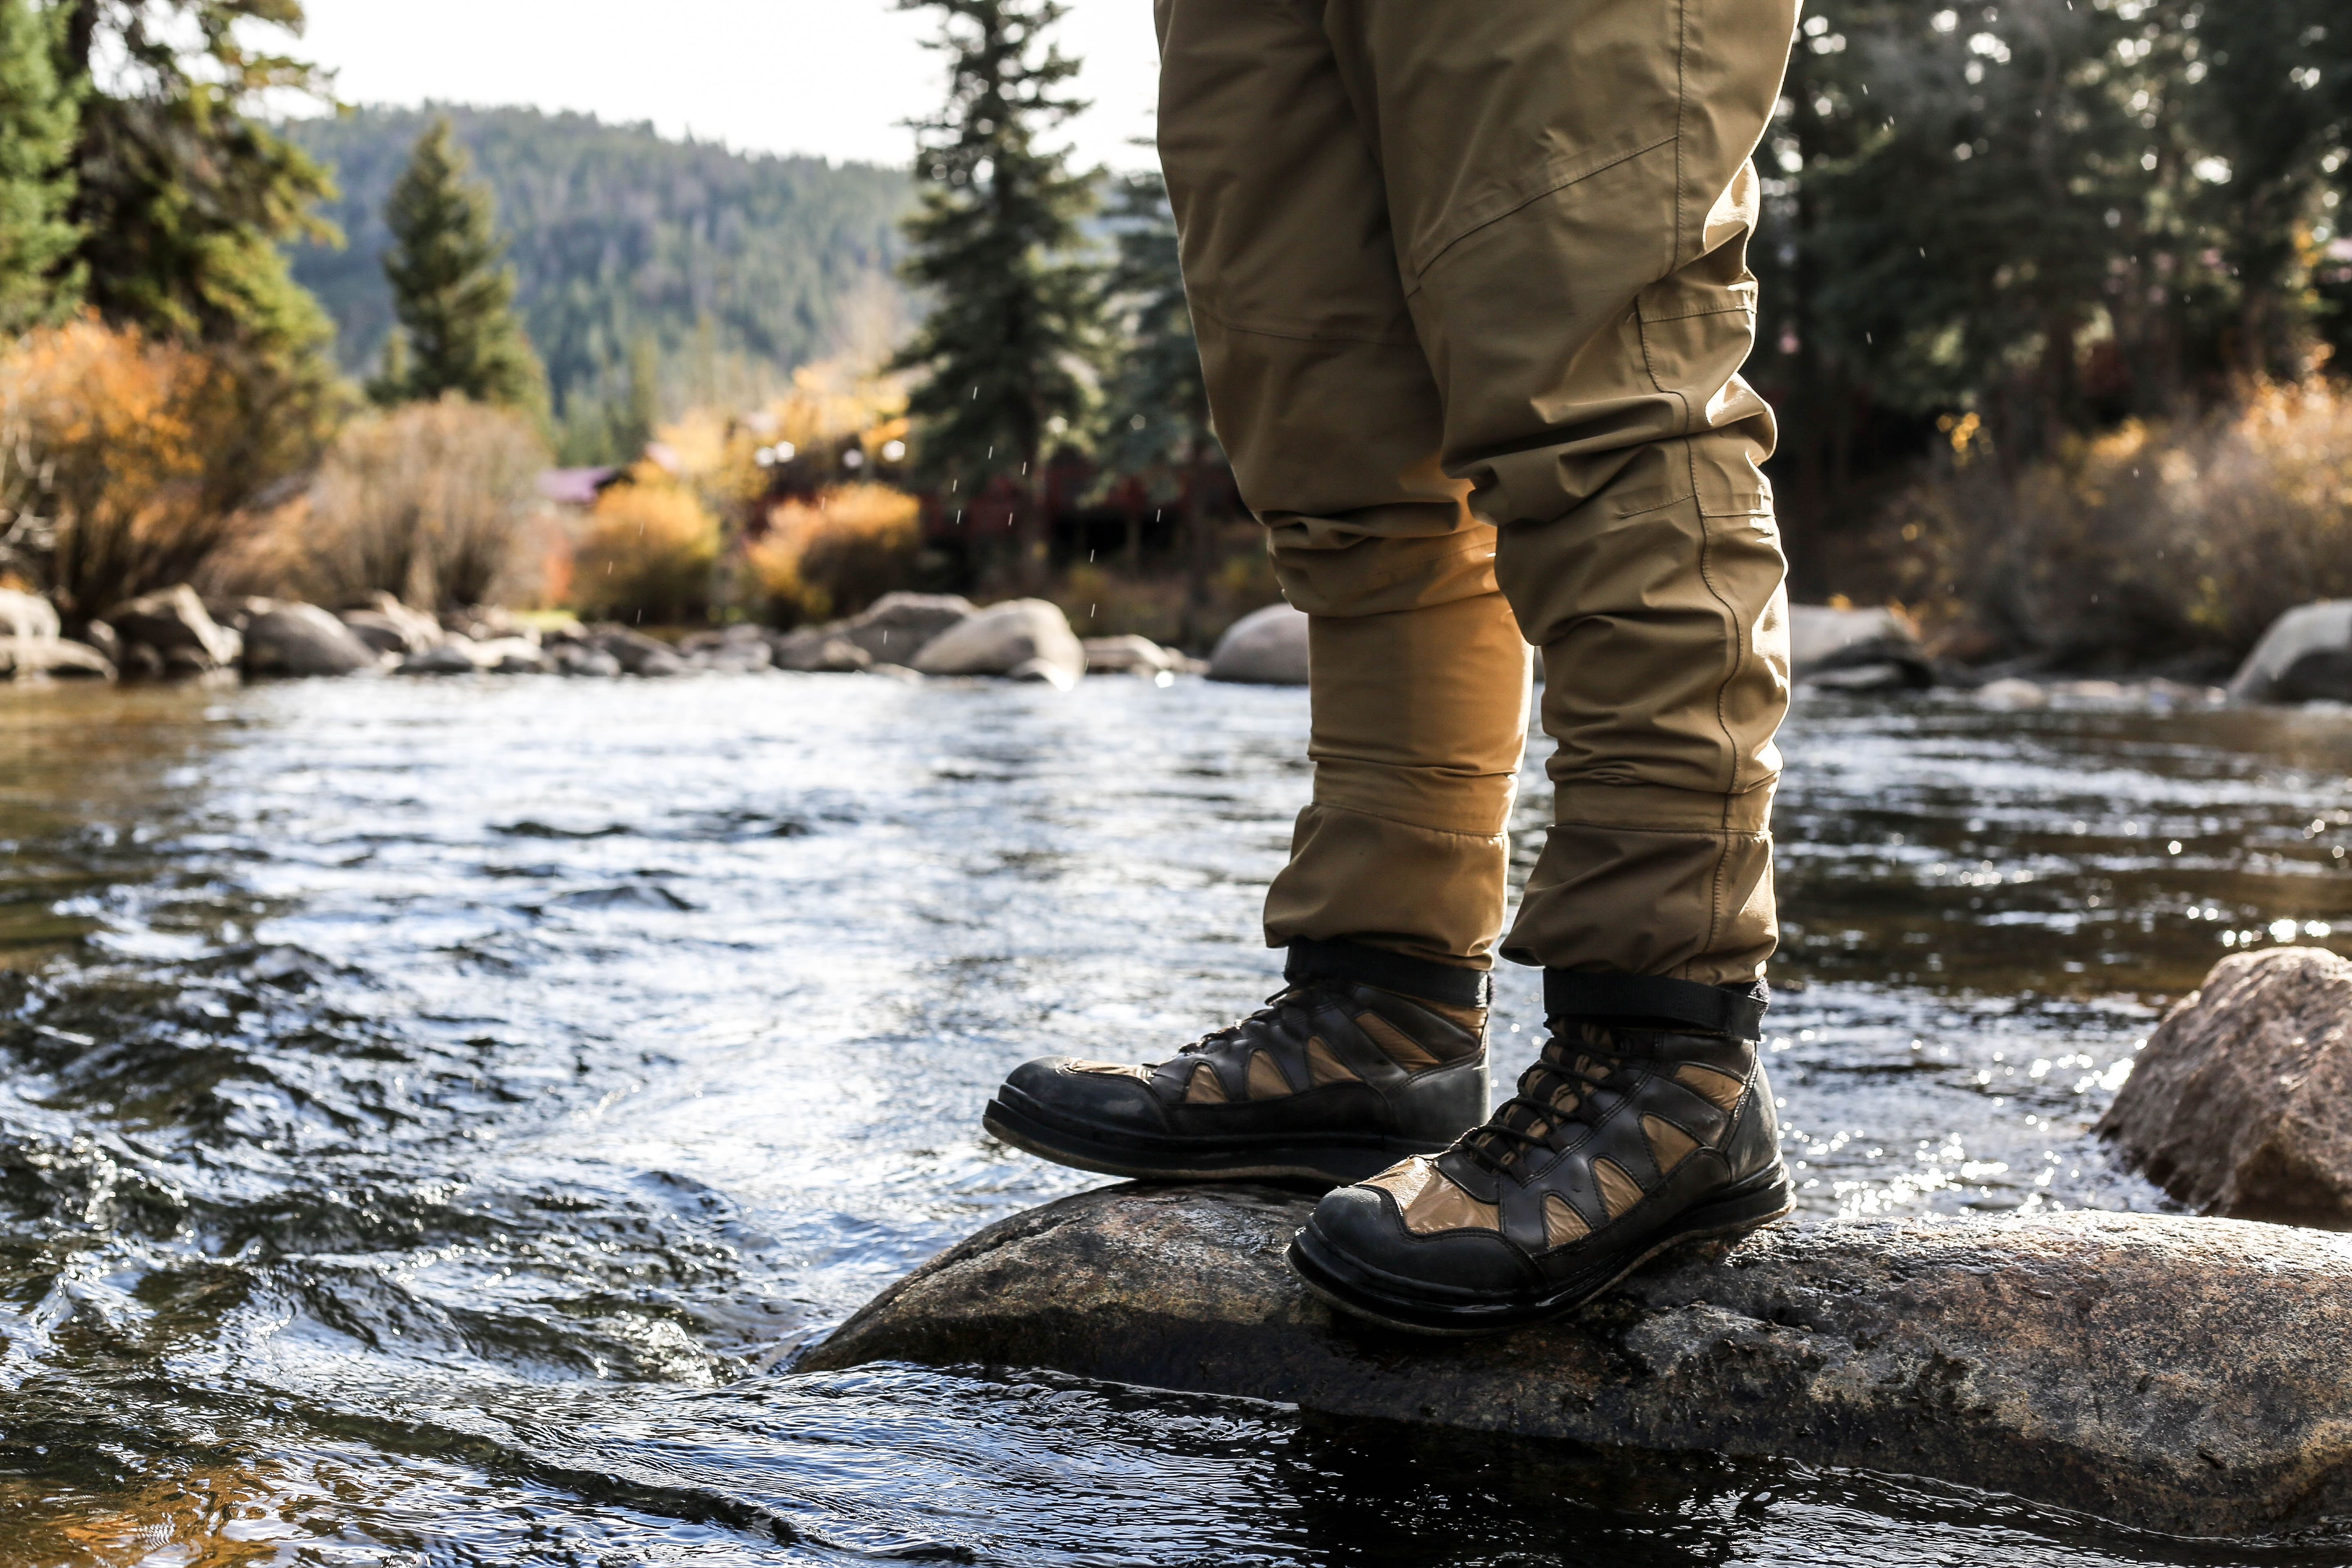 Low shot of a hiker's boots standing on a rock in a stream